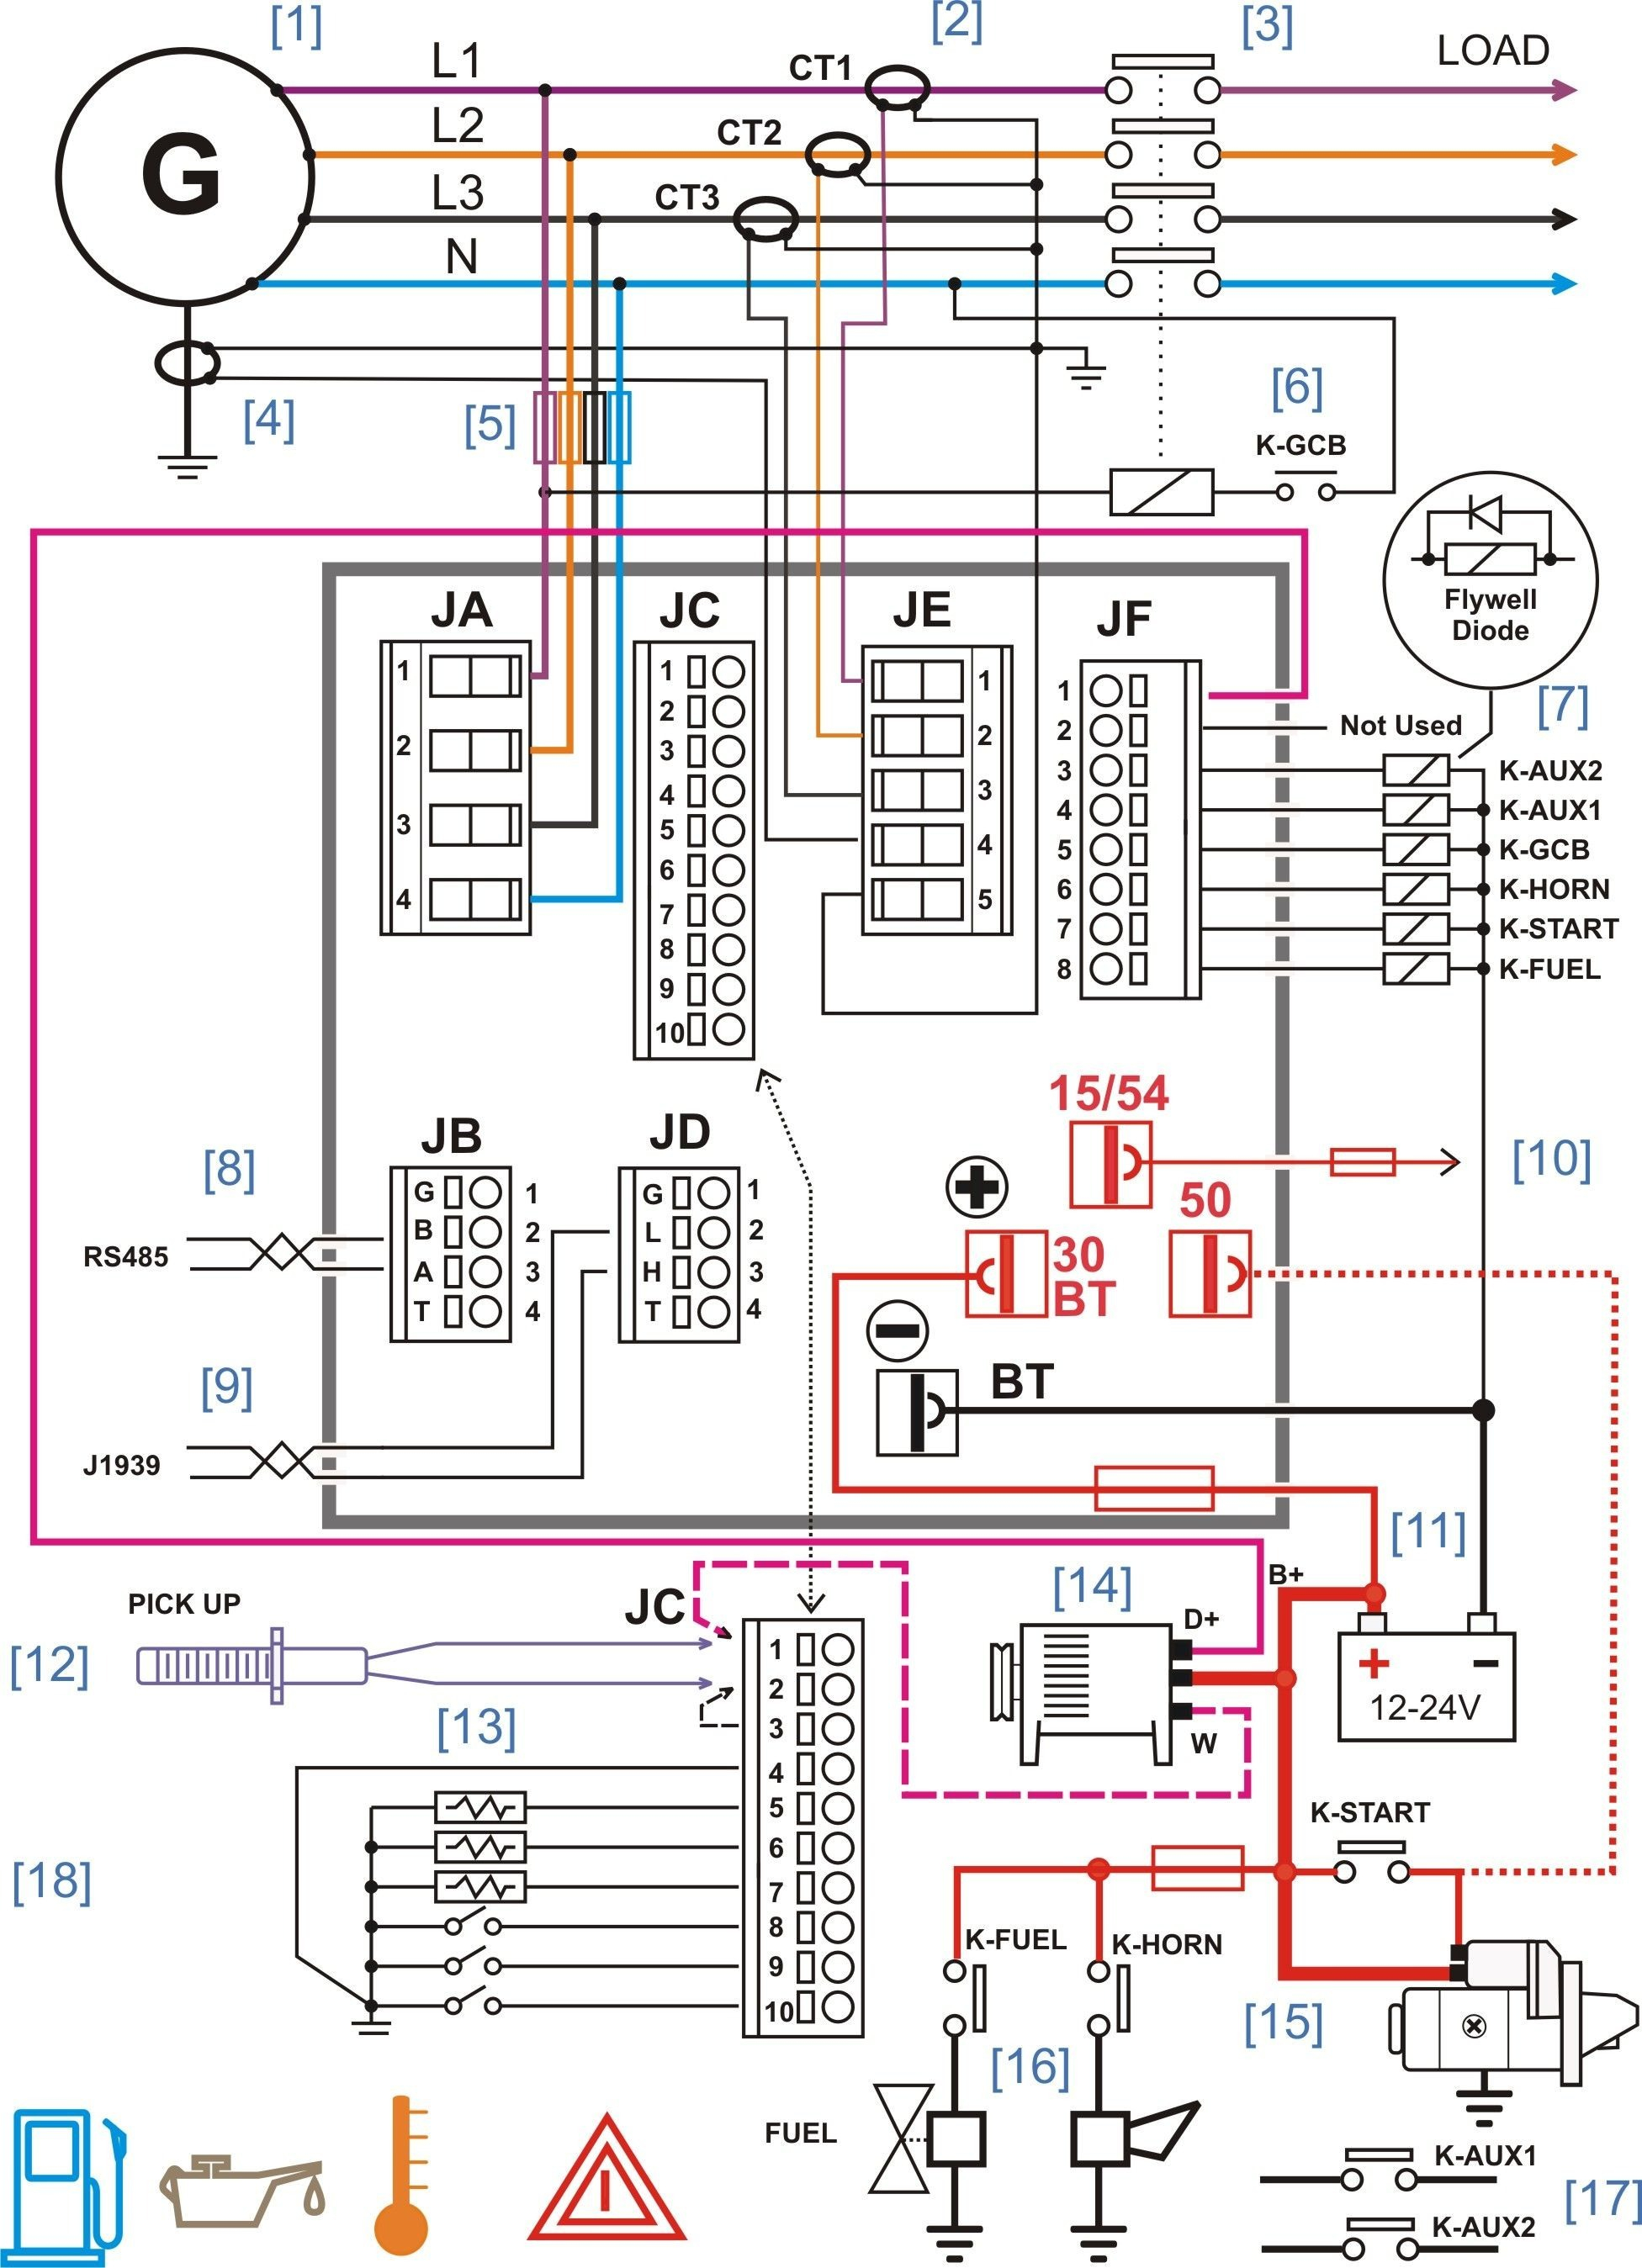 wiring diagram software open source Collection-diagram creator free best of circuit diagram creator new boss od 2 rh originalstylophone wiring diagram creator free wiring diagram creator open source 8-e